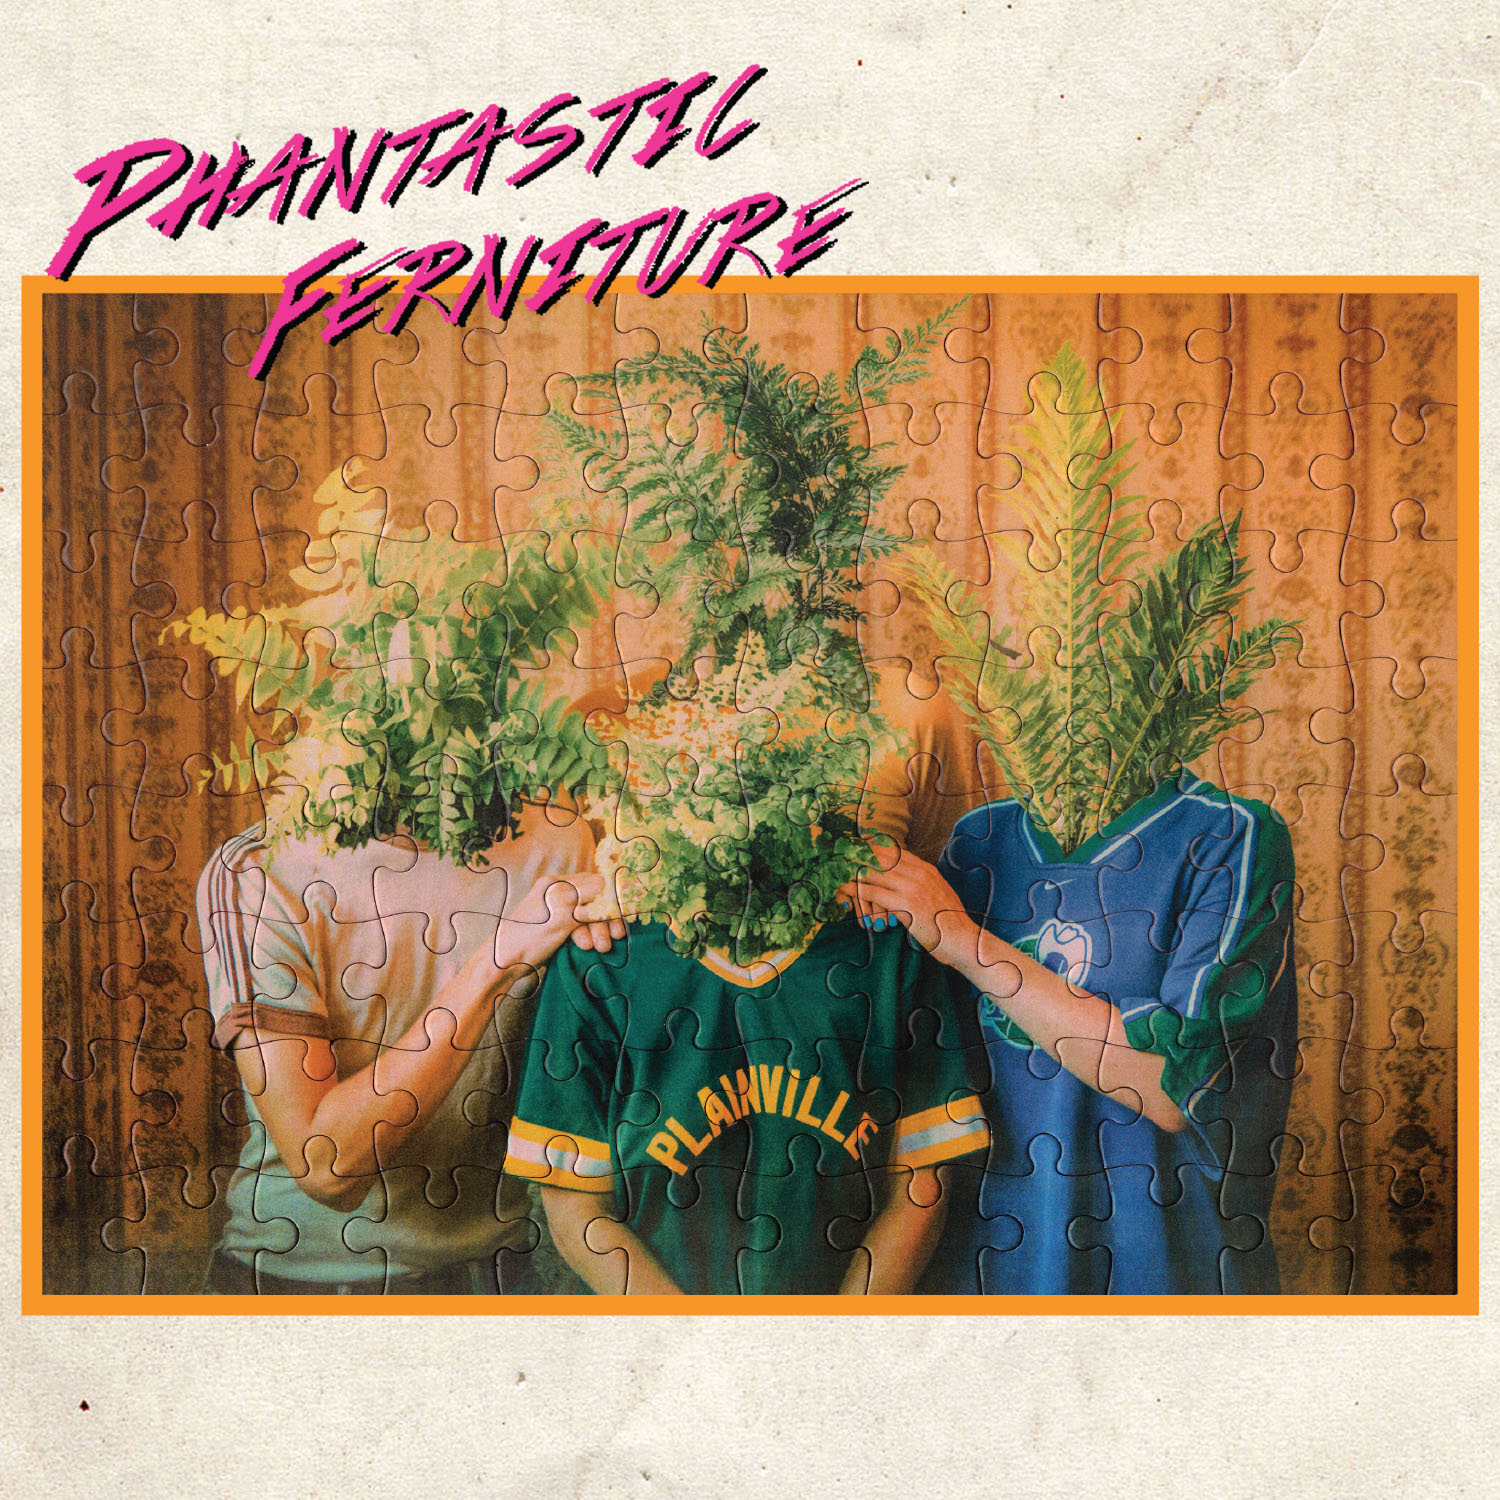 Phantastic Ferniture - S/T